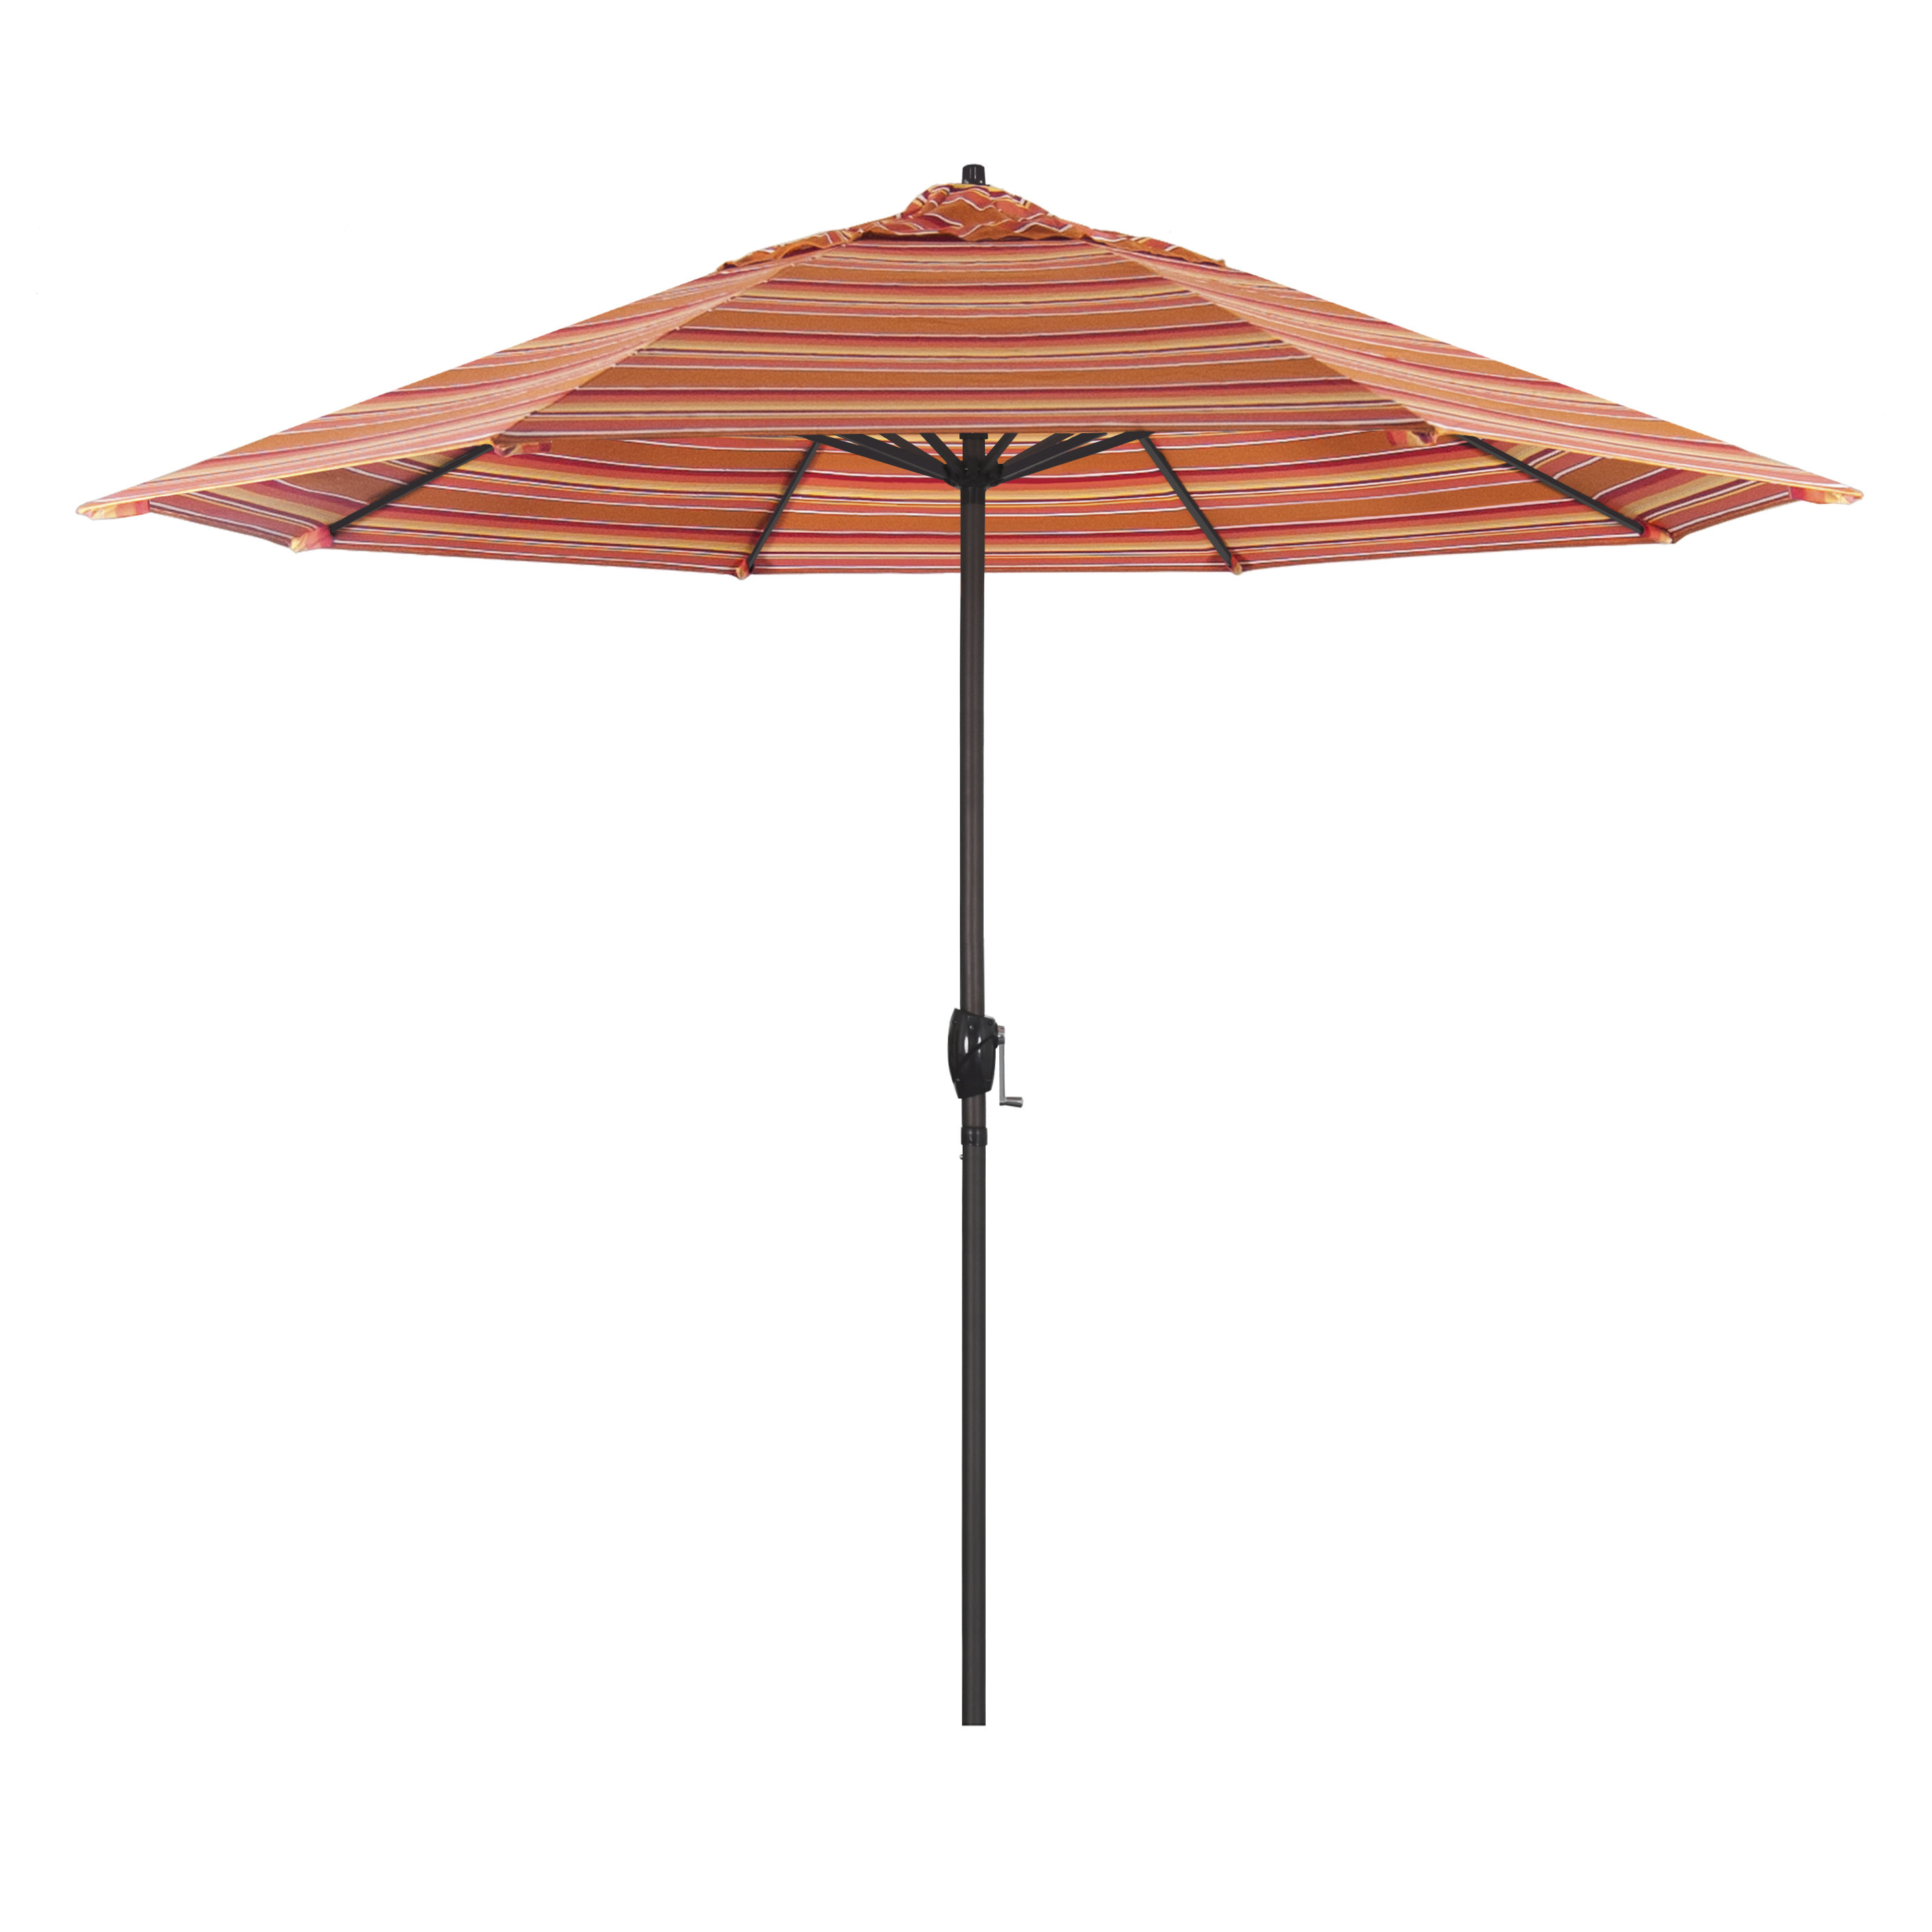 Best And Newest Cardine 9' Market Sunbrella Umbrella Throughout Crowland Market Sunbrella Umbrellas (View 1 of 20)